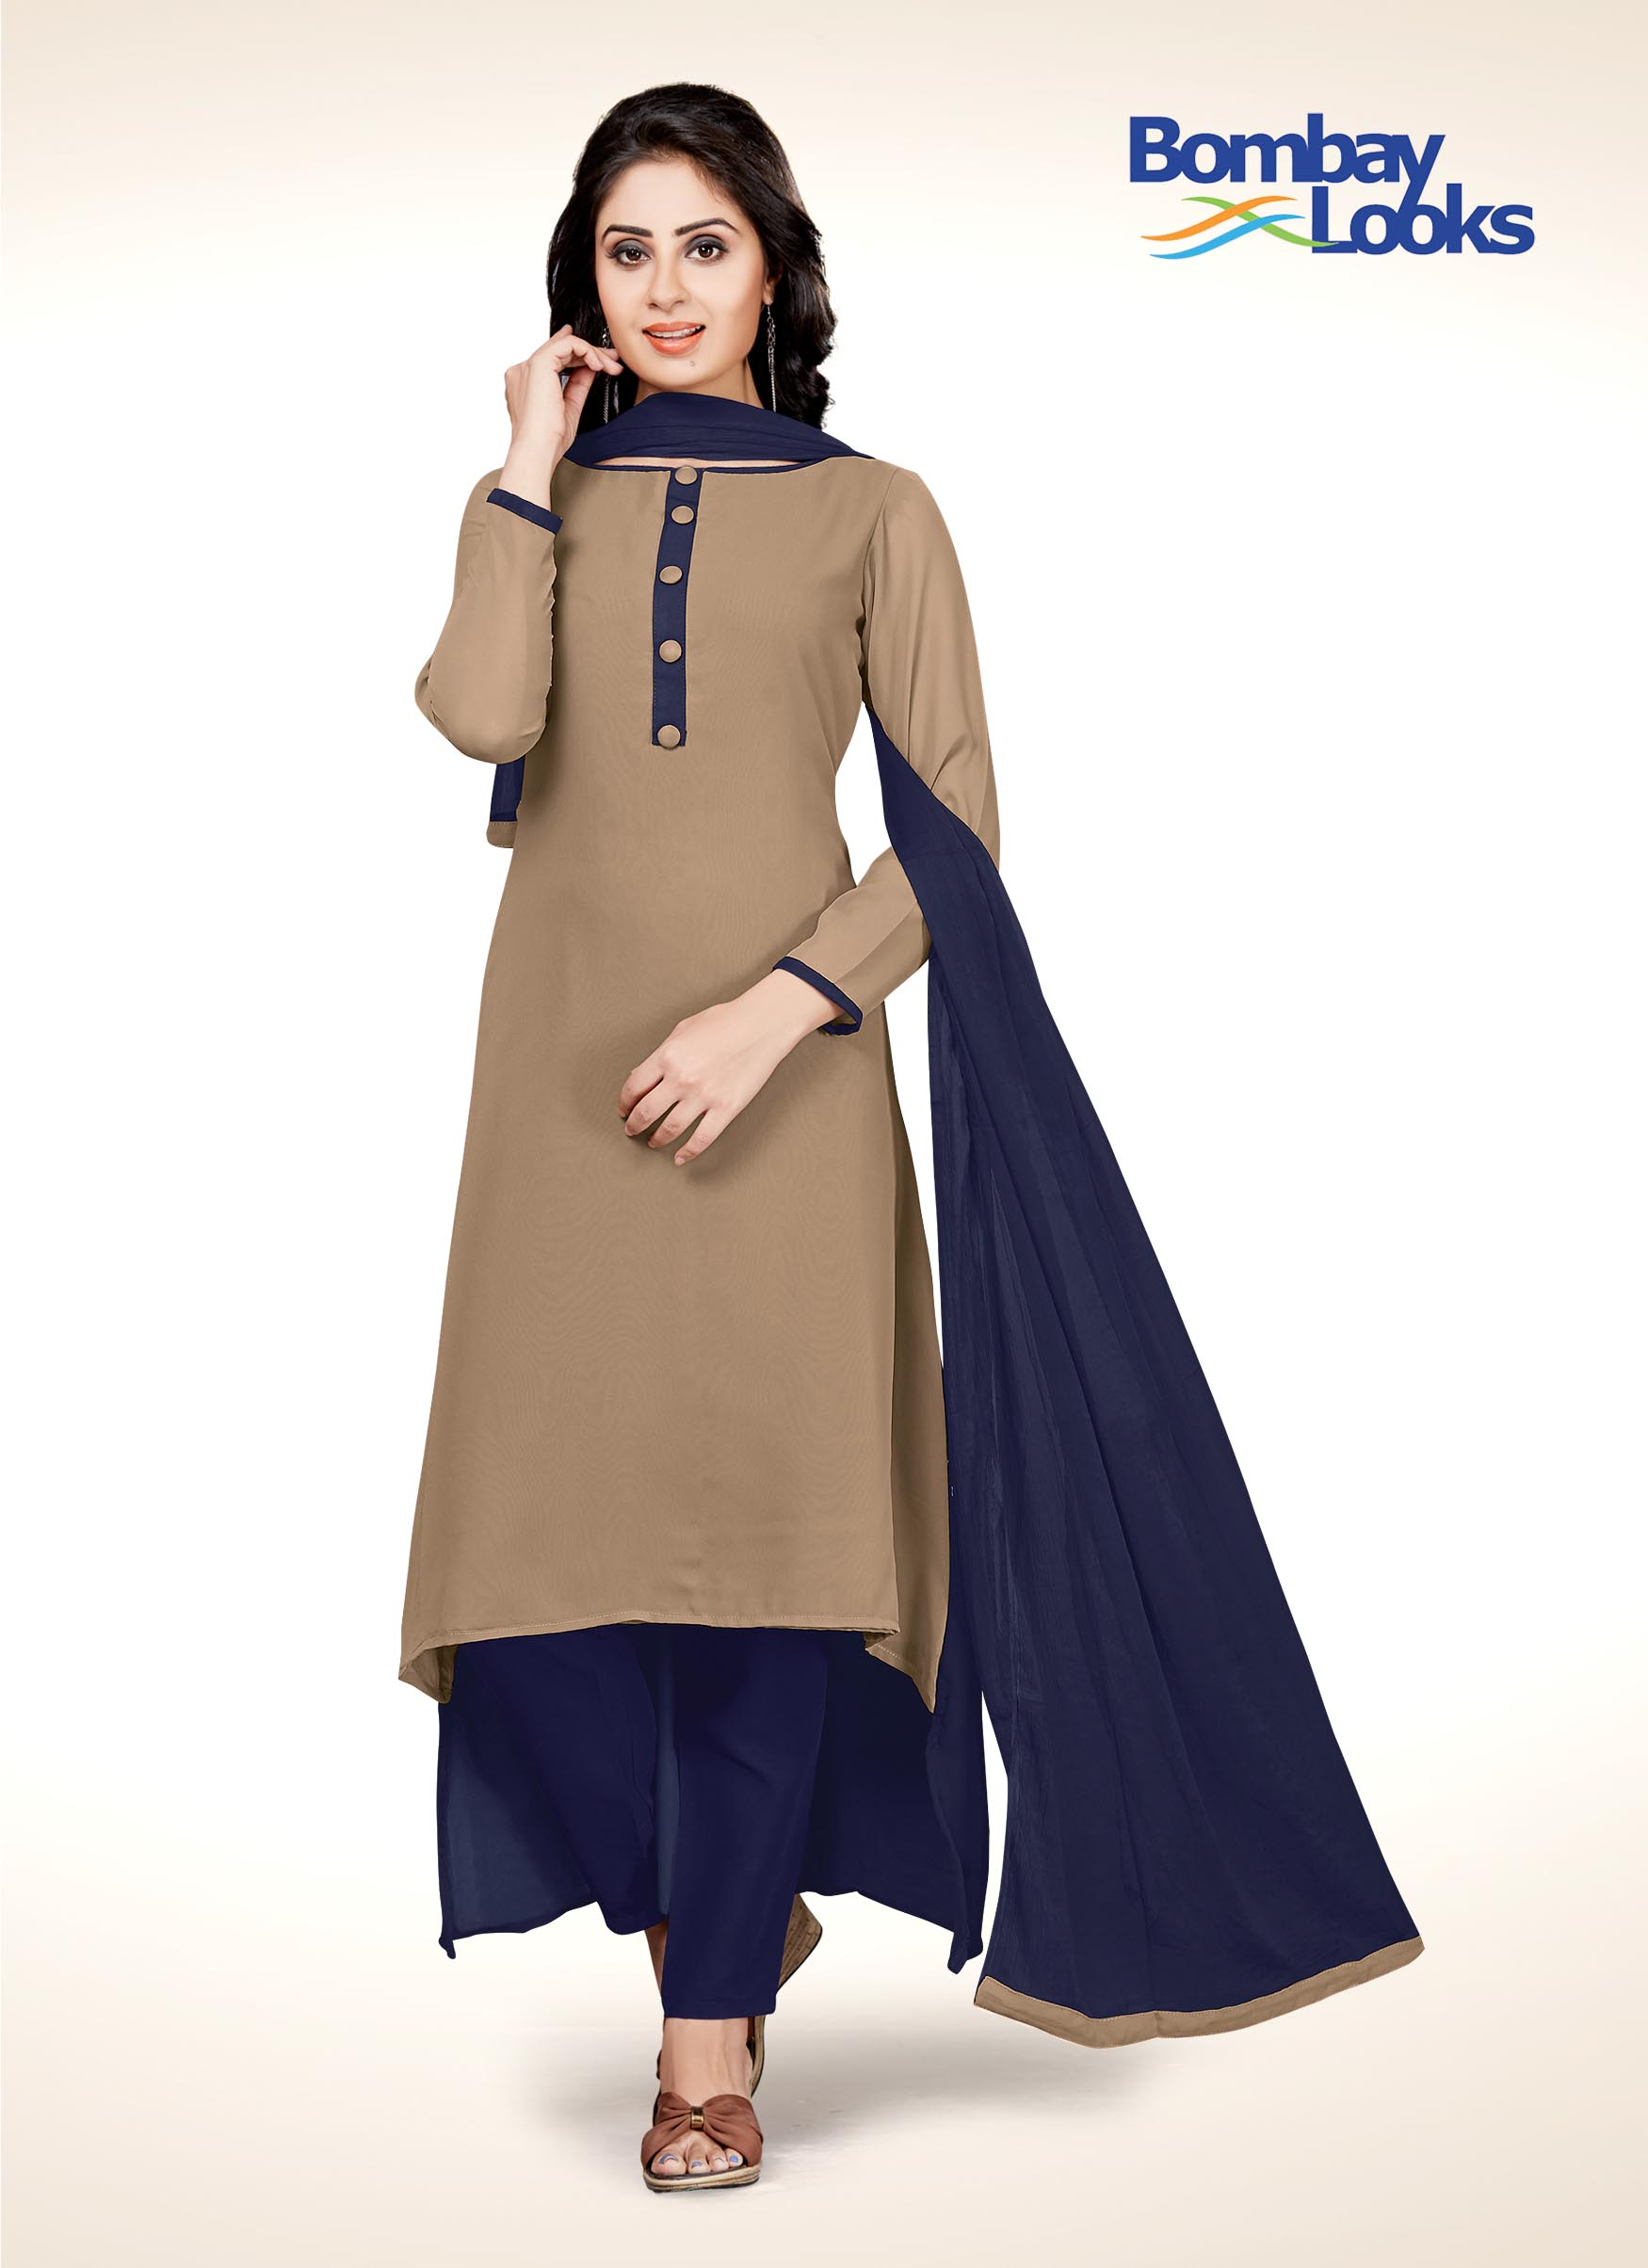 Beige coloured suit set with navy blue cigarette pant and dupatta